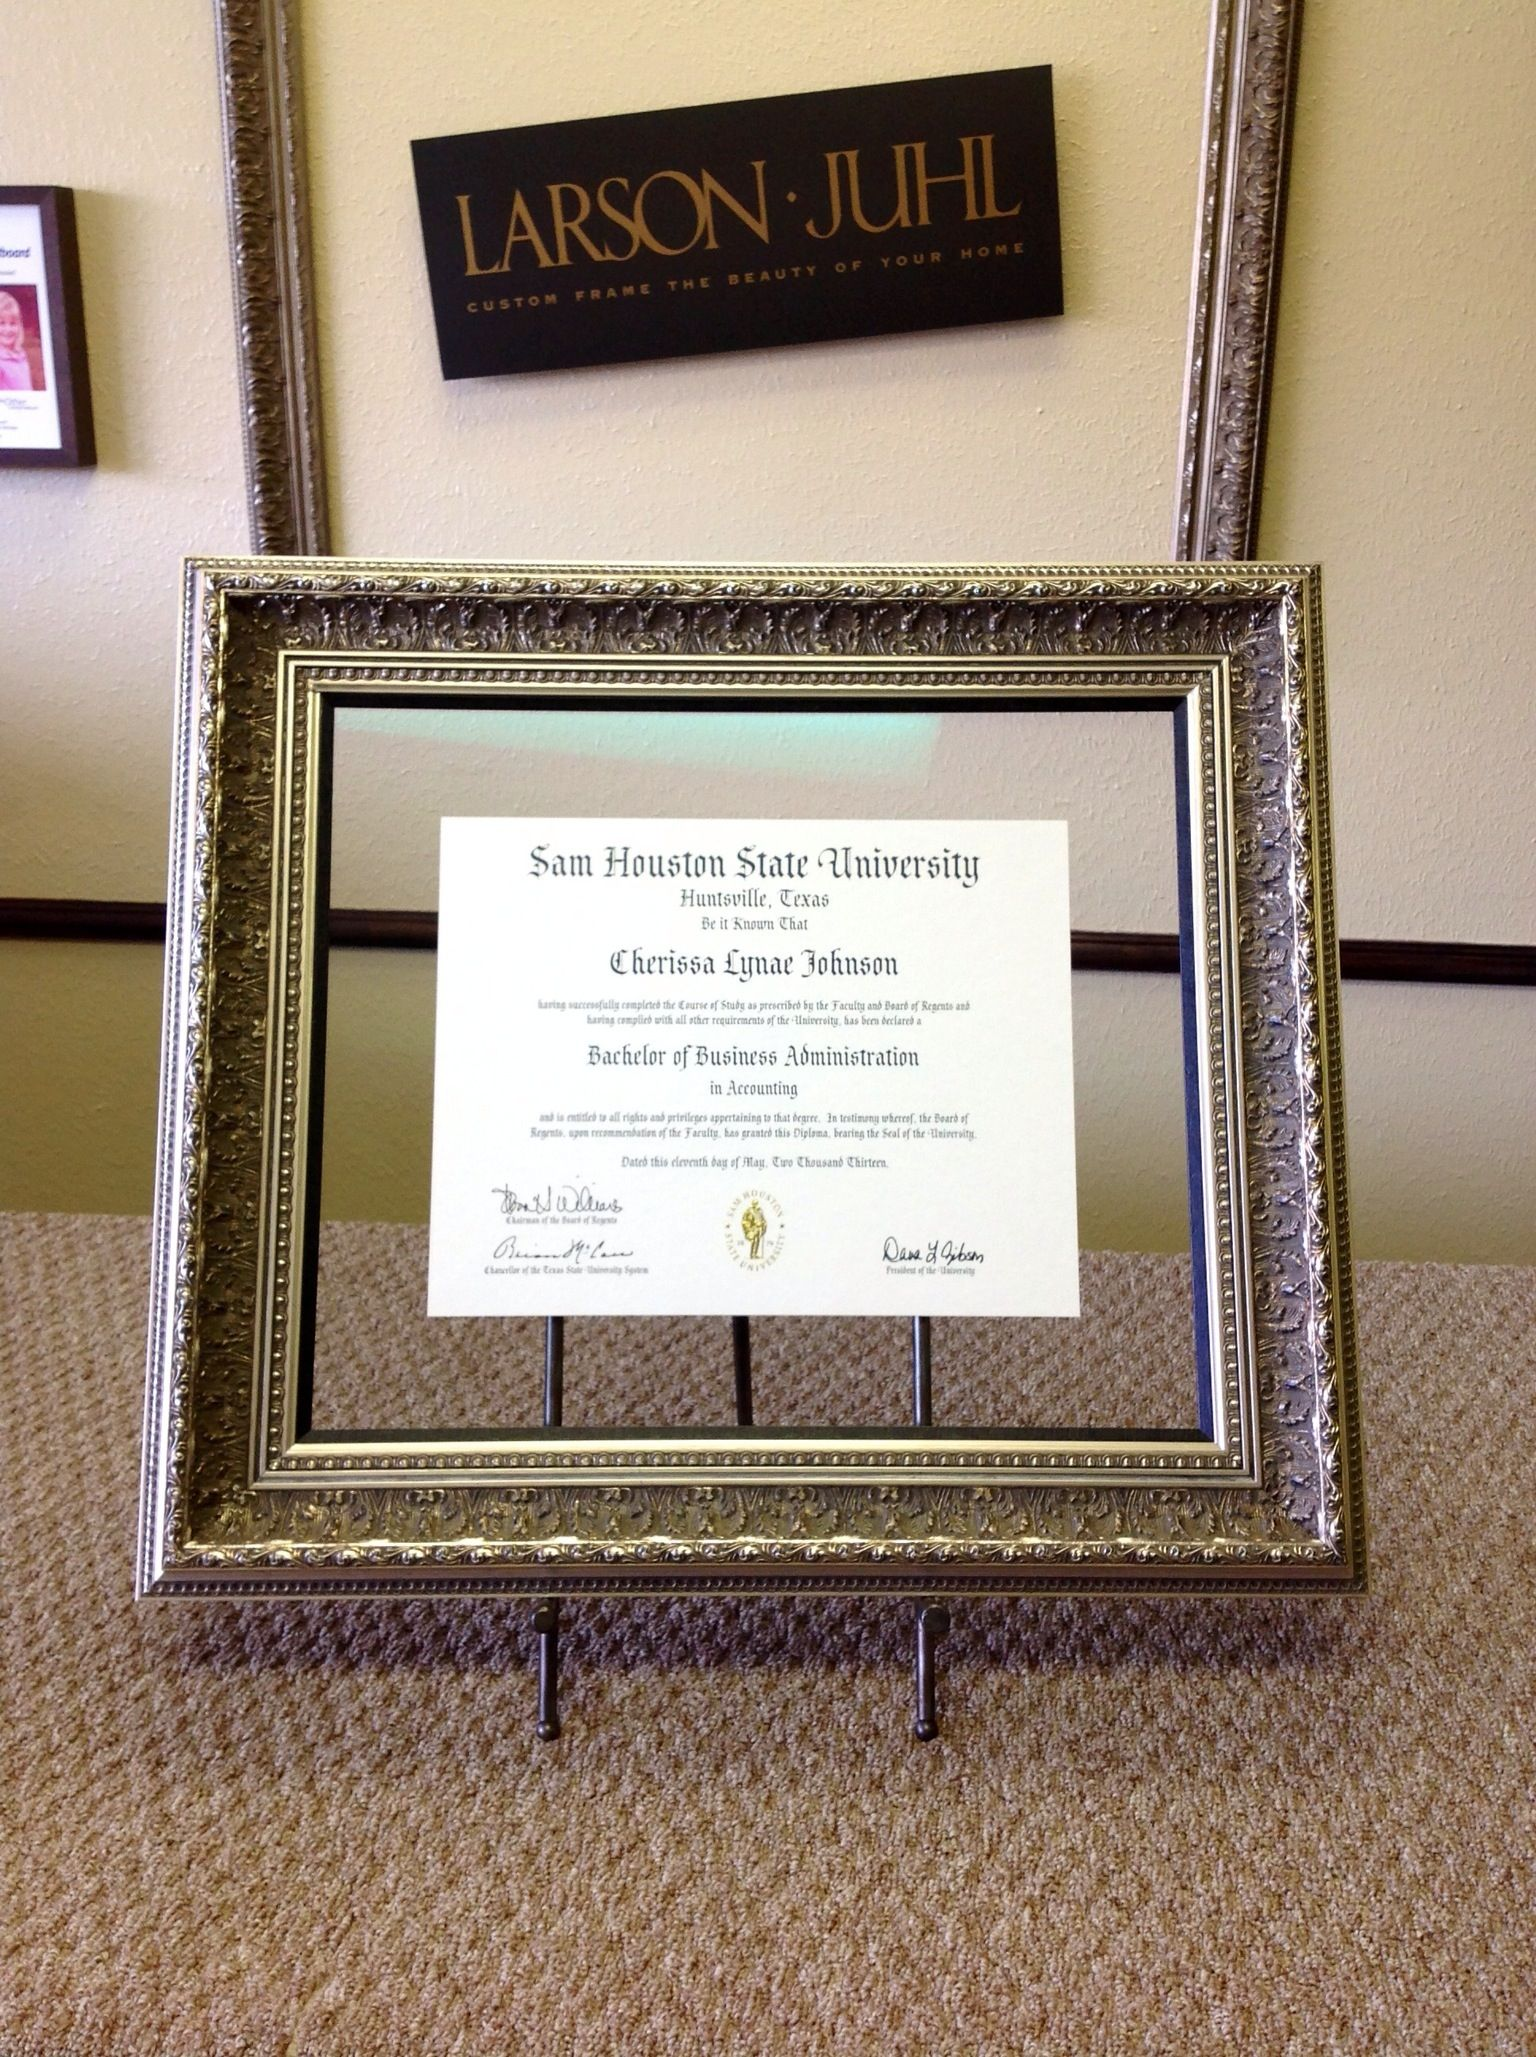 Sam Houston State University Degree Floated Between Two Pieces Of Museum Glass Larson Juhl Frame